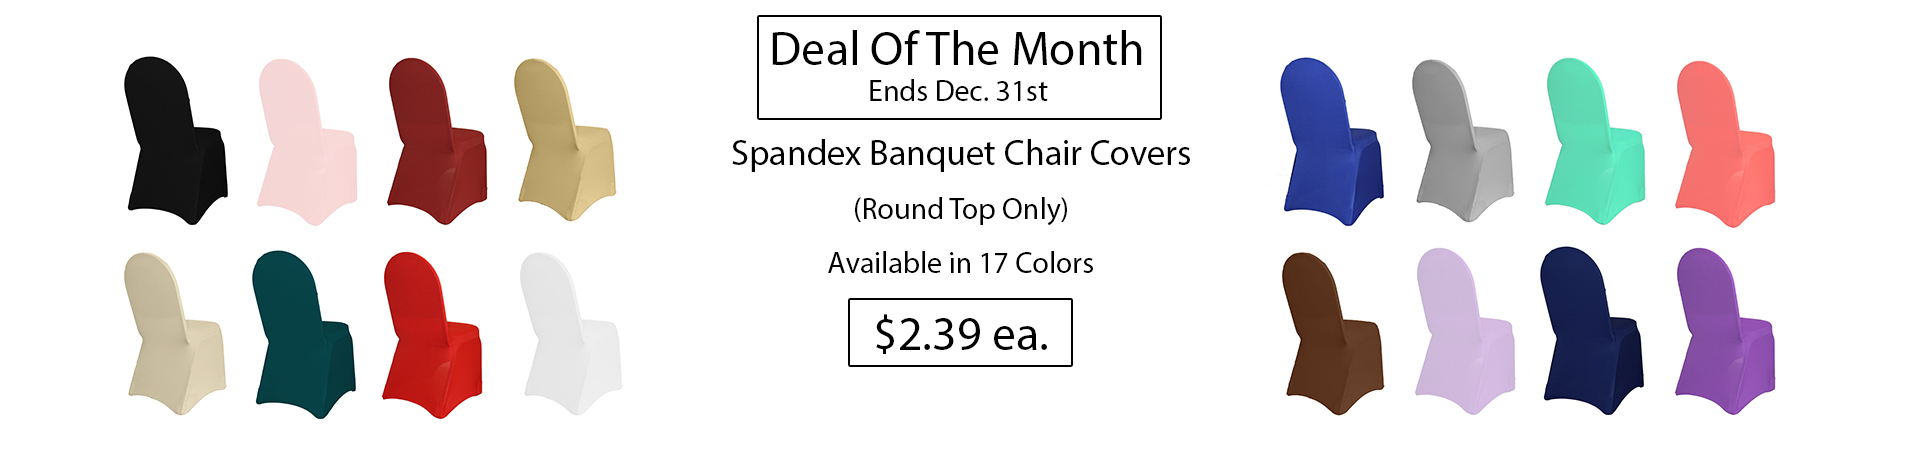 spandex chair covers deal of the month